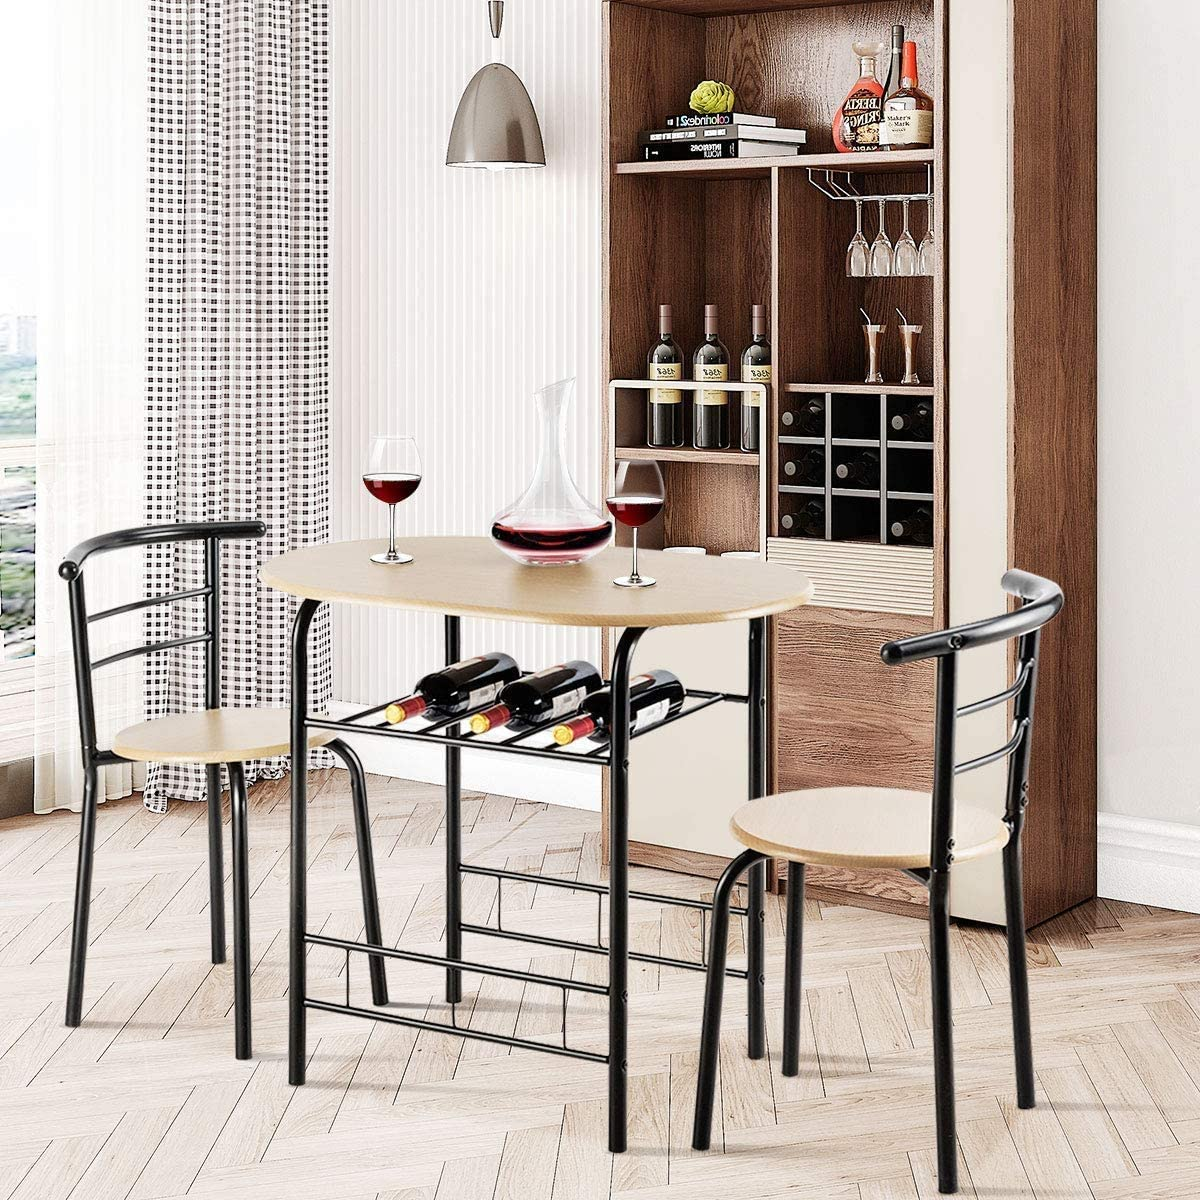 Buy ARLIME 9 Piece Dining Table Set, 9 Chairs and Round Table Set ...